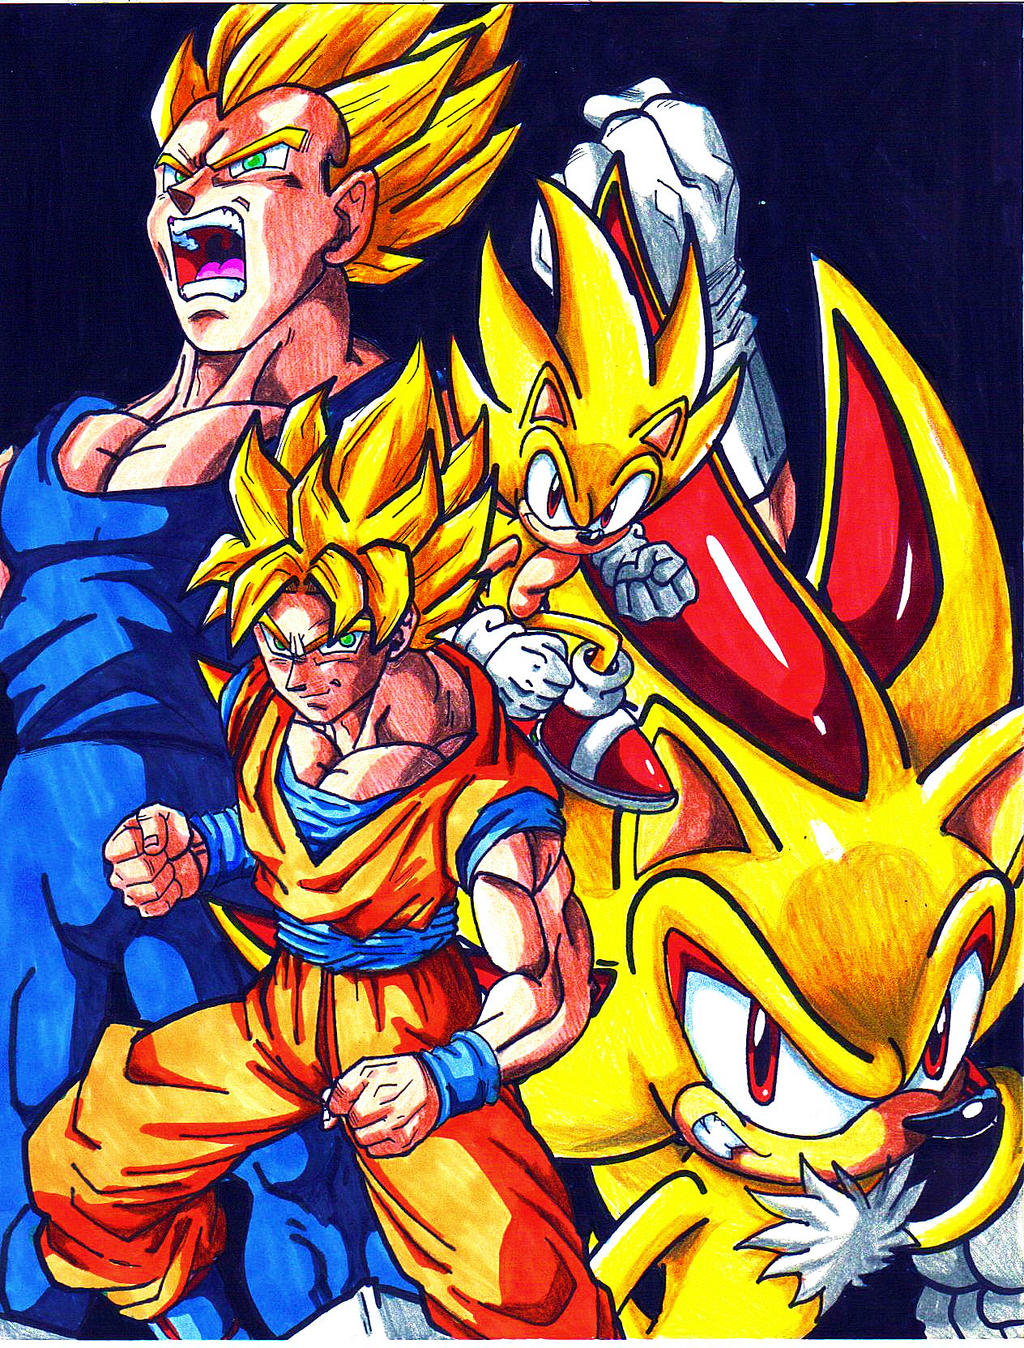 GOKU And SONIC By Trunks24 On DeviantArt